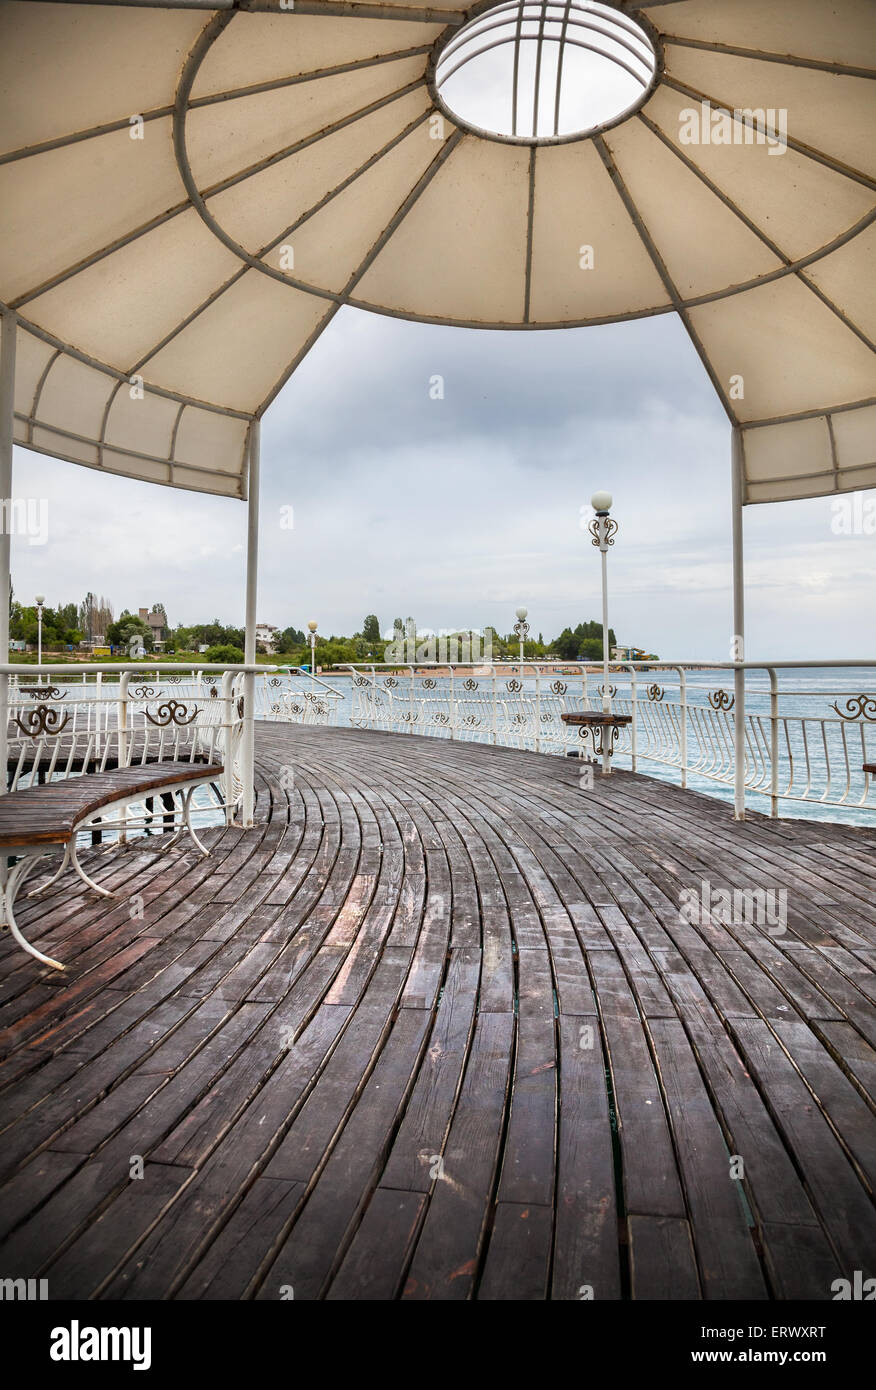 Pier in Ruh Ordo cultural complex near Issyk Kul lake at overcast sky in Cholpon Ata, Kyrgyzstan - Stock Image